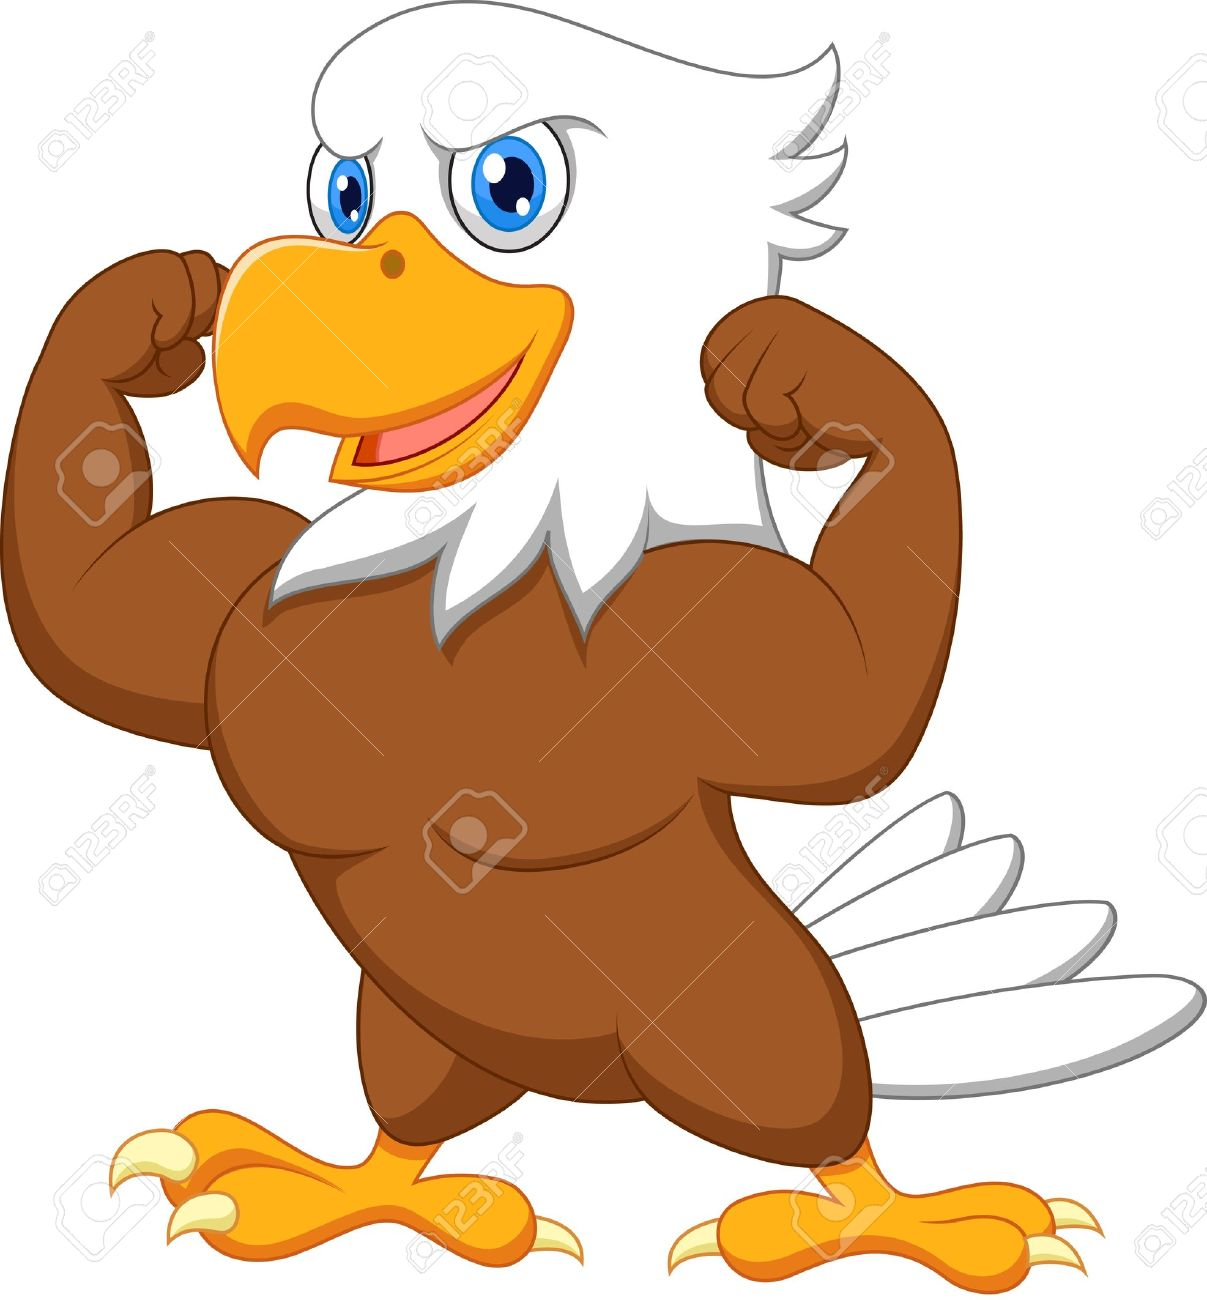 1207x1300 Strong Eagle Royalty Free Cliparts, Vectors, And Stock